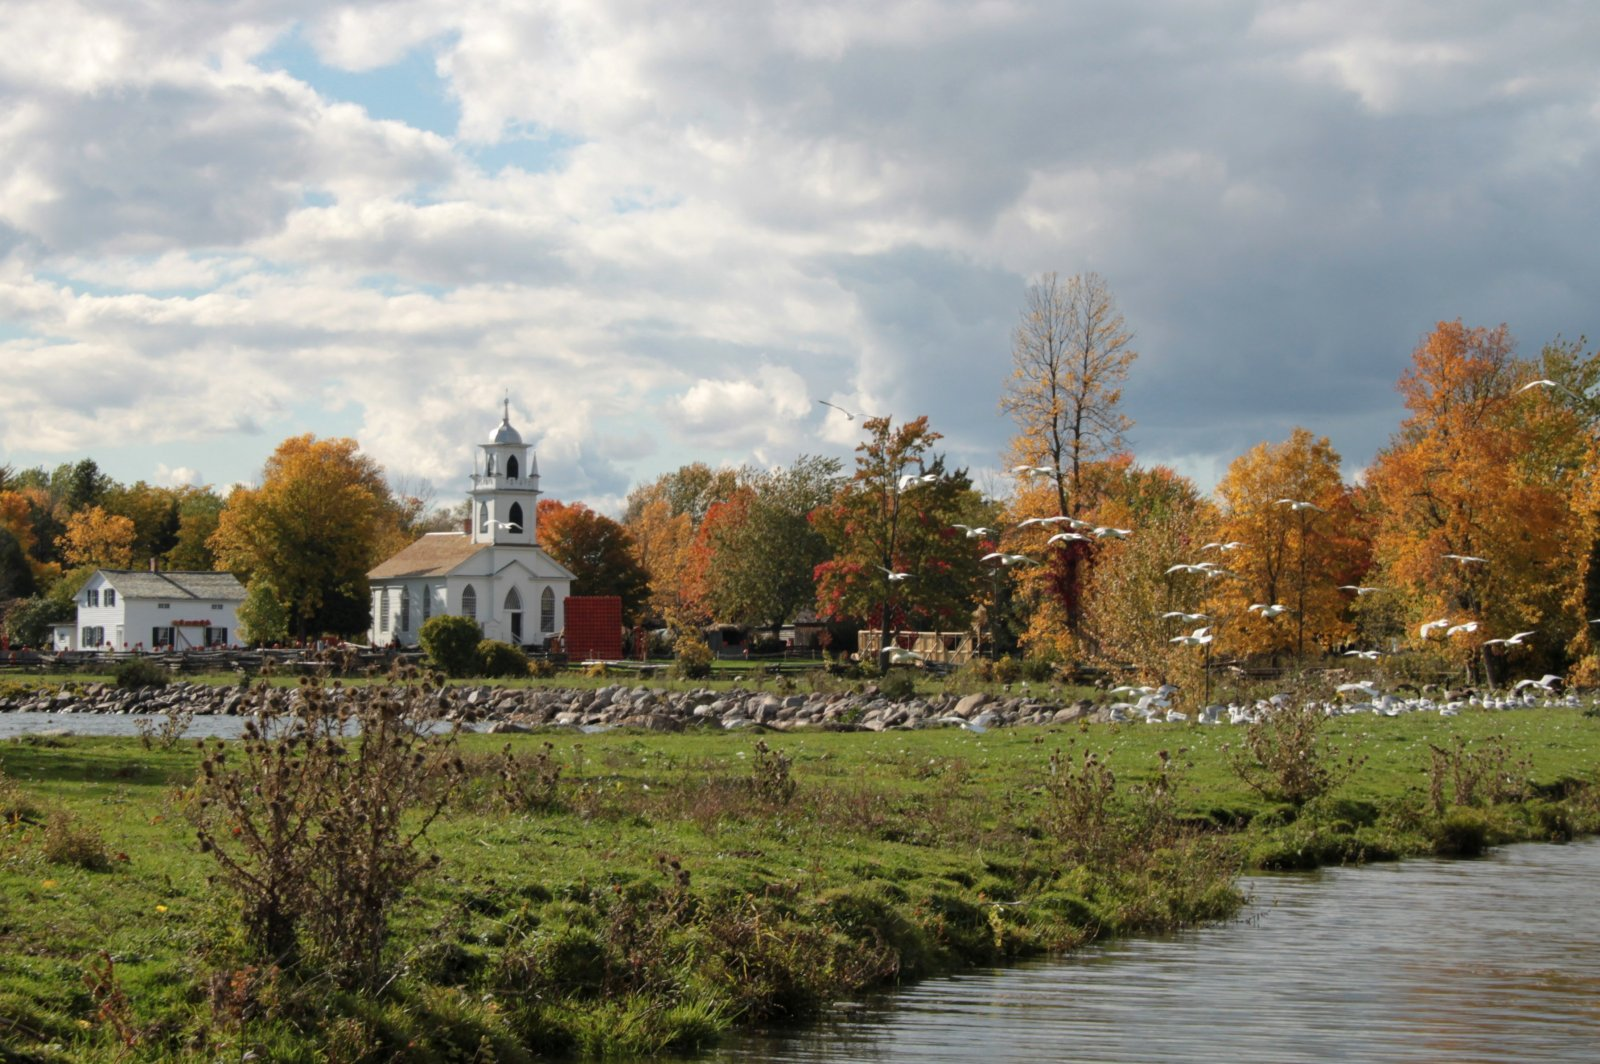 A Perfect Fall Scene at Upper Canada Village